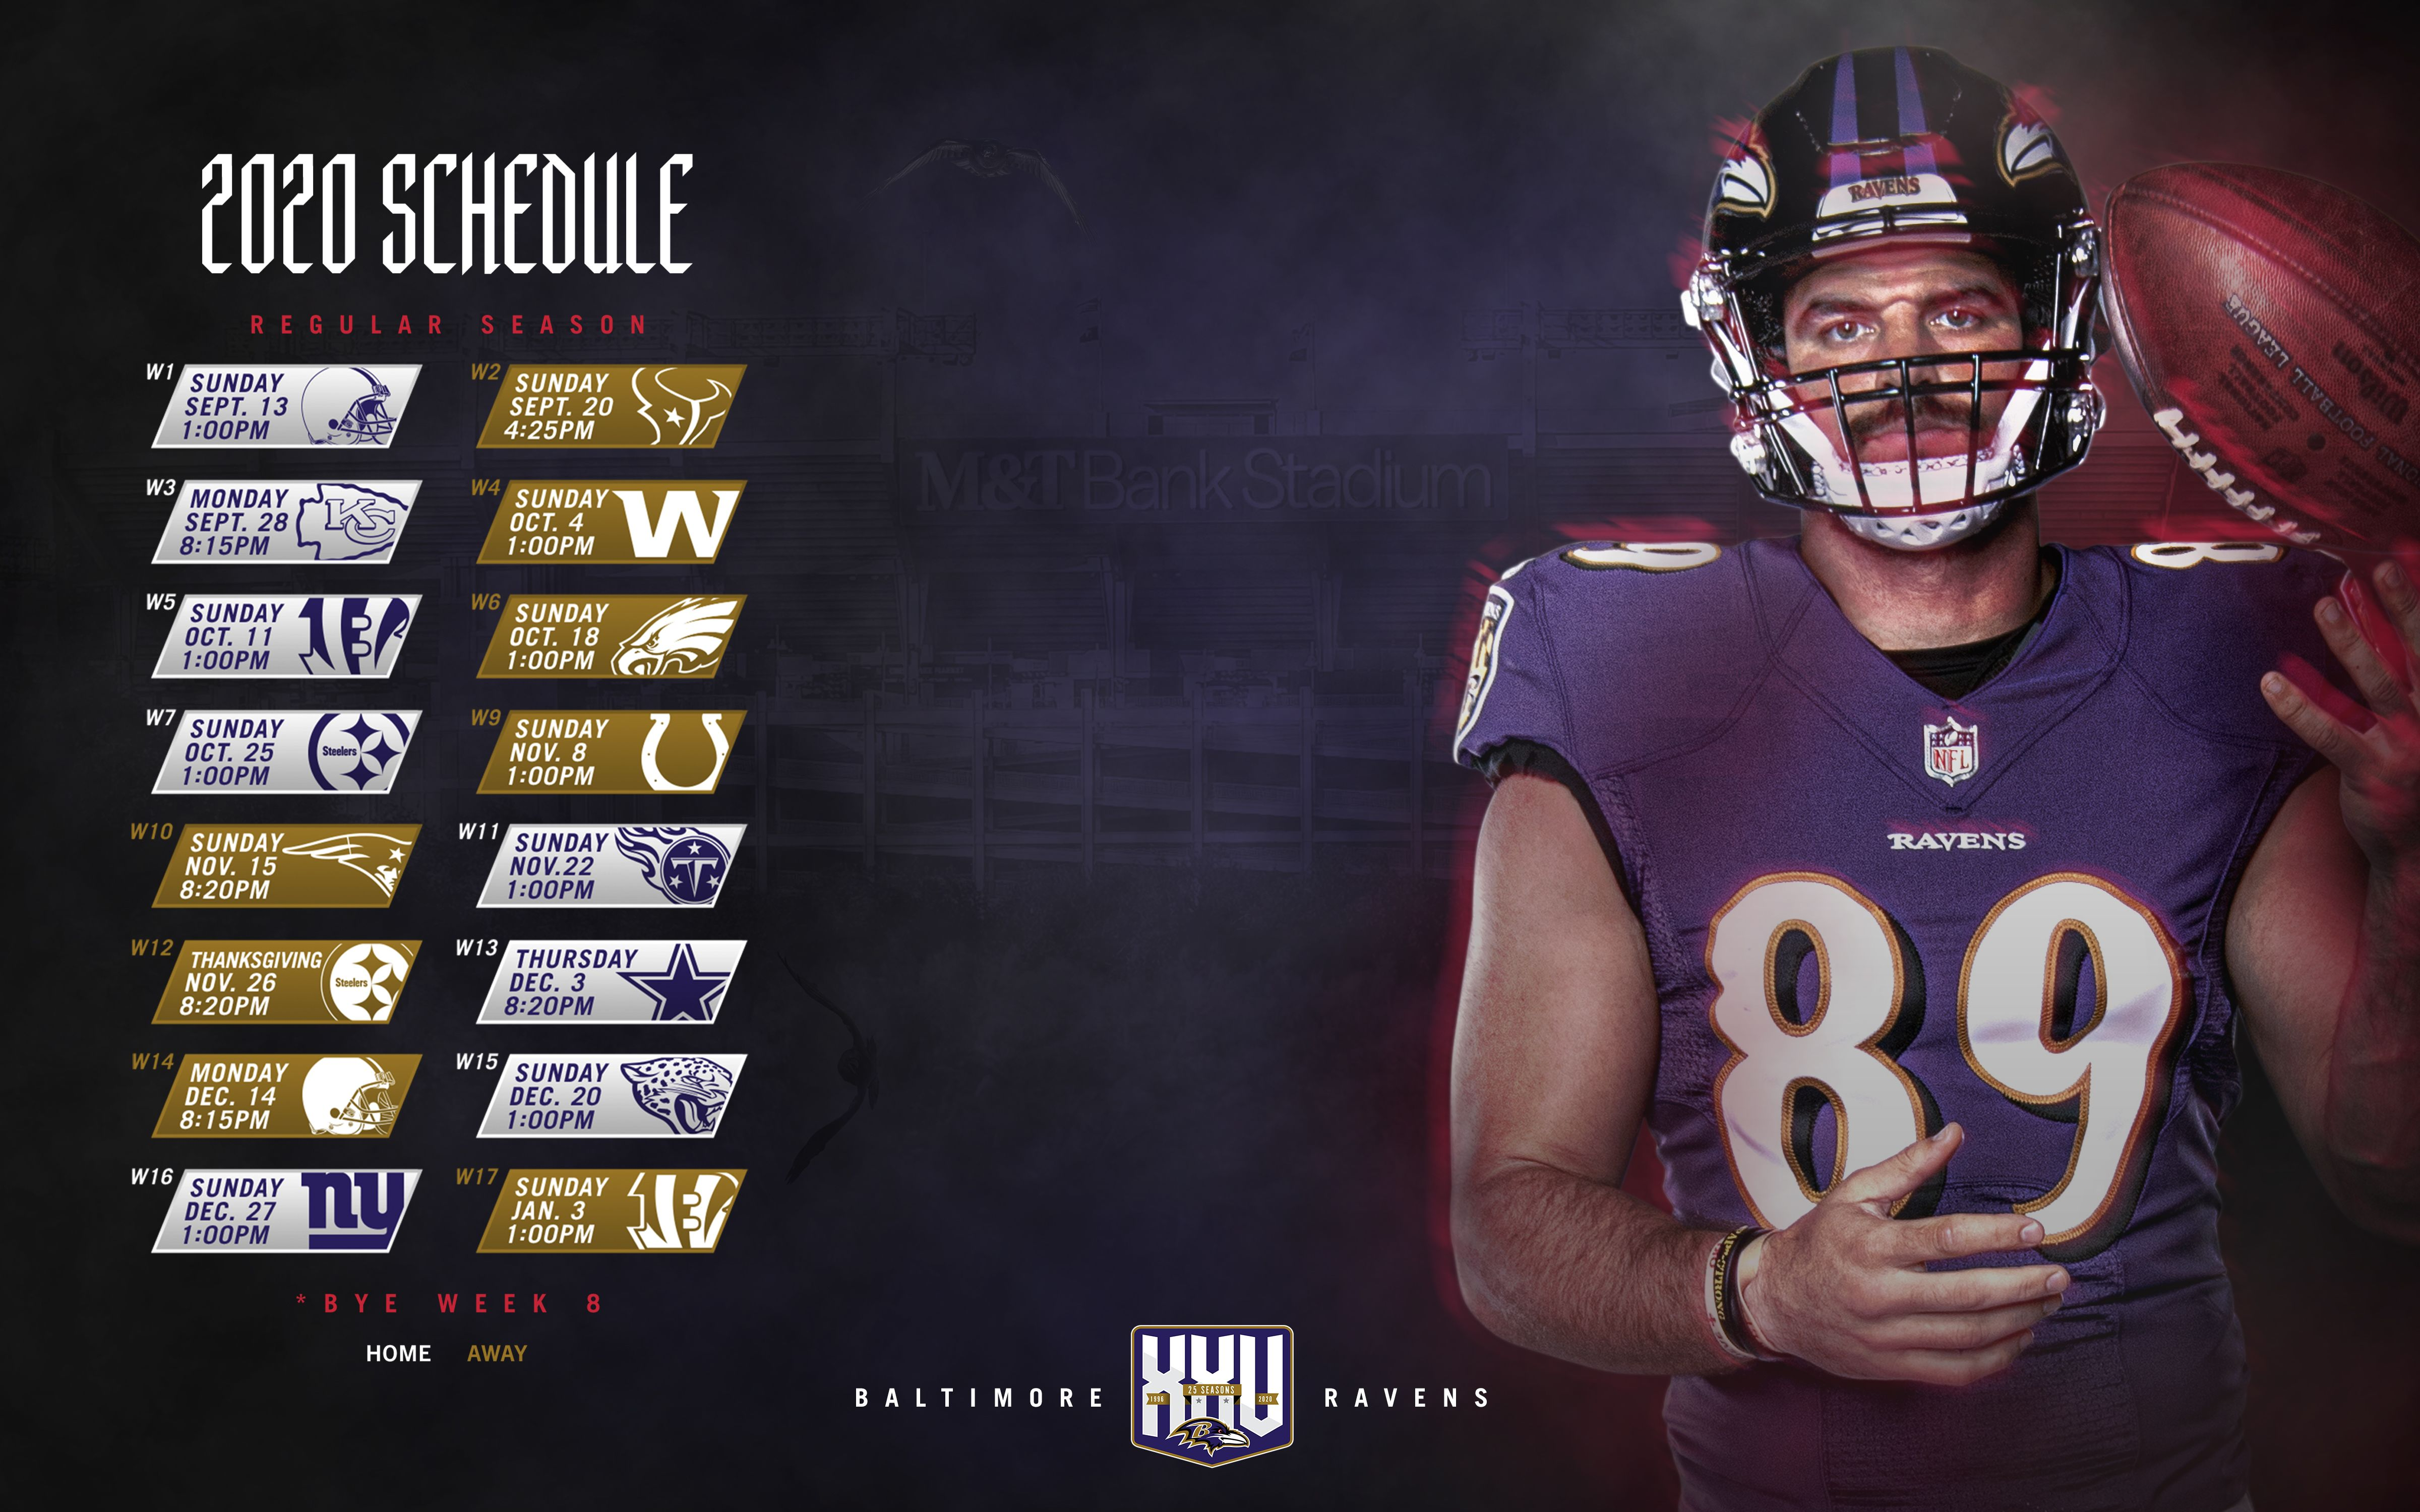 Schedule-desktop-1920x1200-Andrews